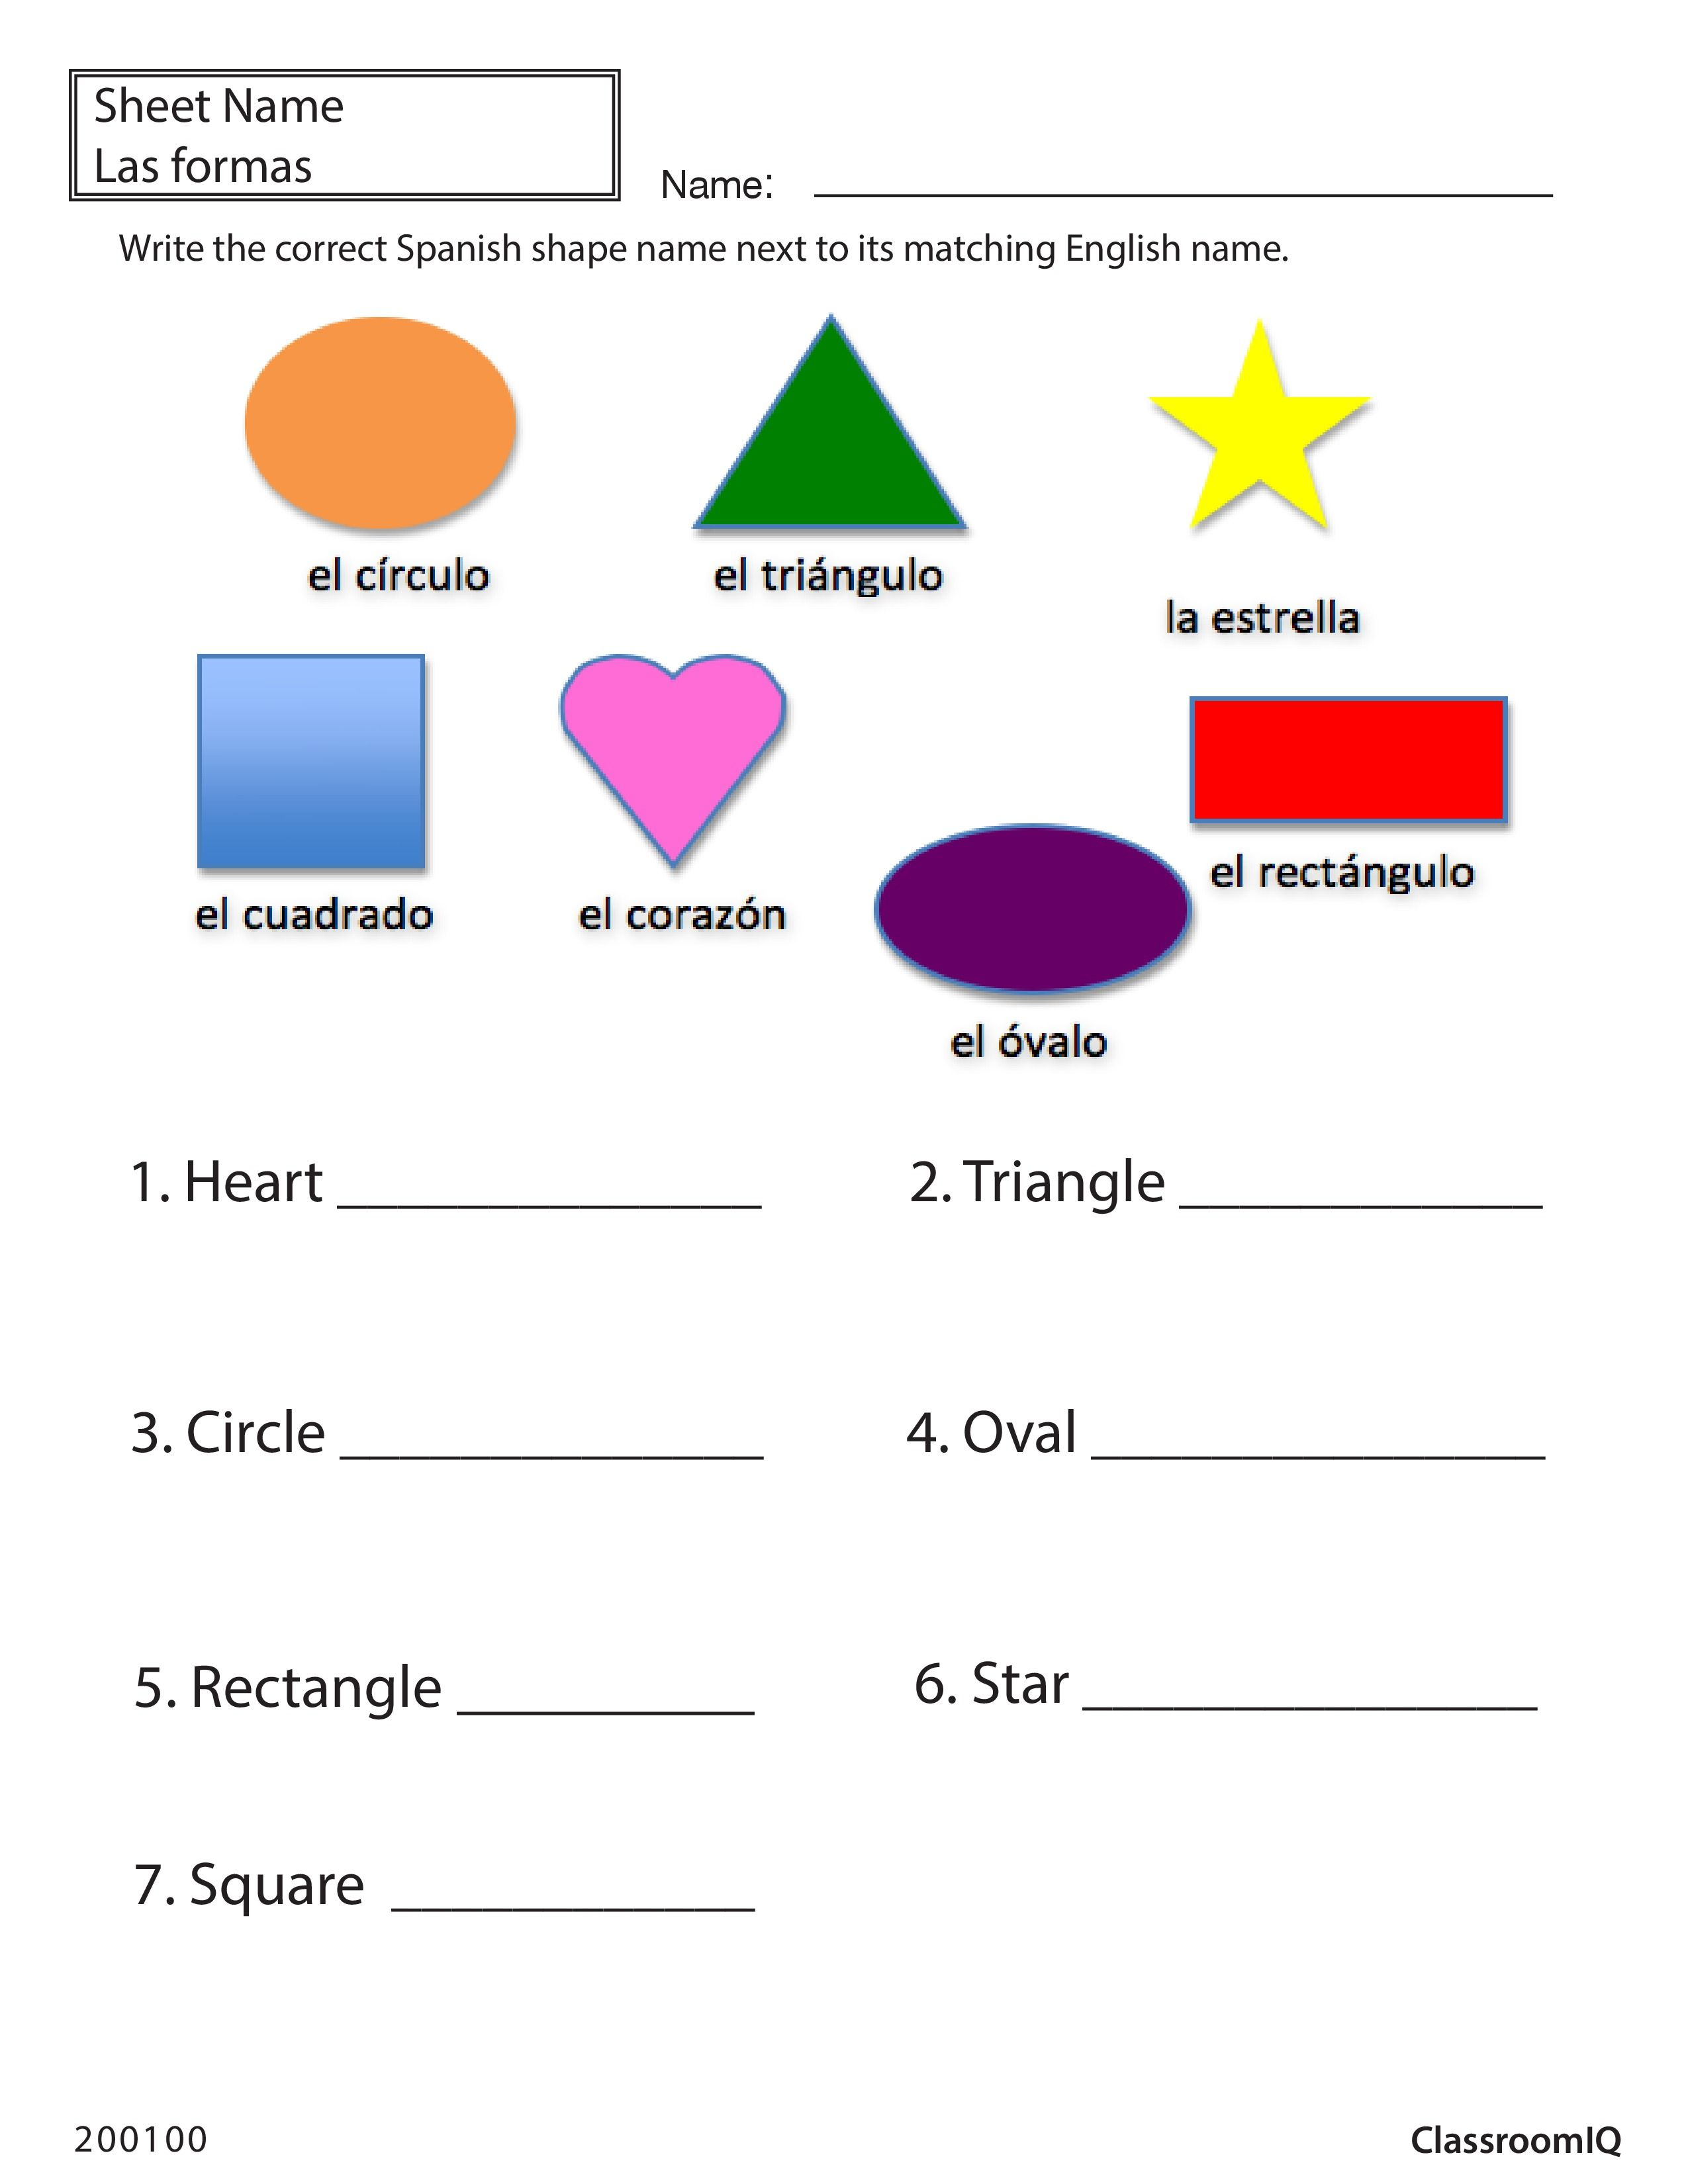 Spanish Shapes Worksheet From Classroomiq